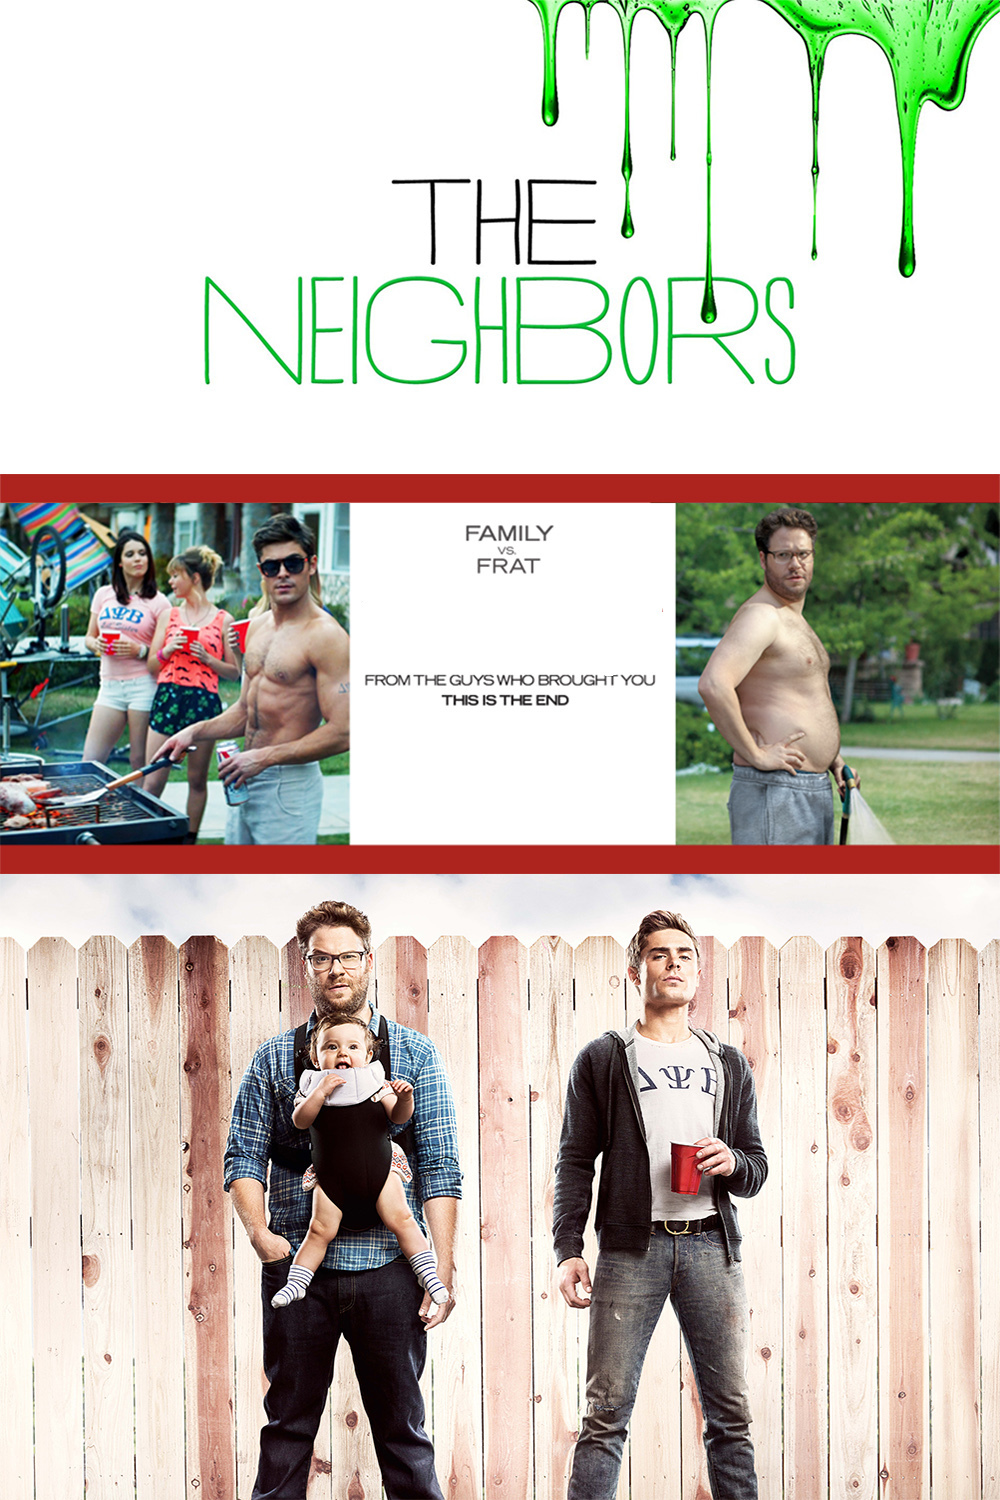 The neighbors dvd release date in Perth